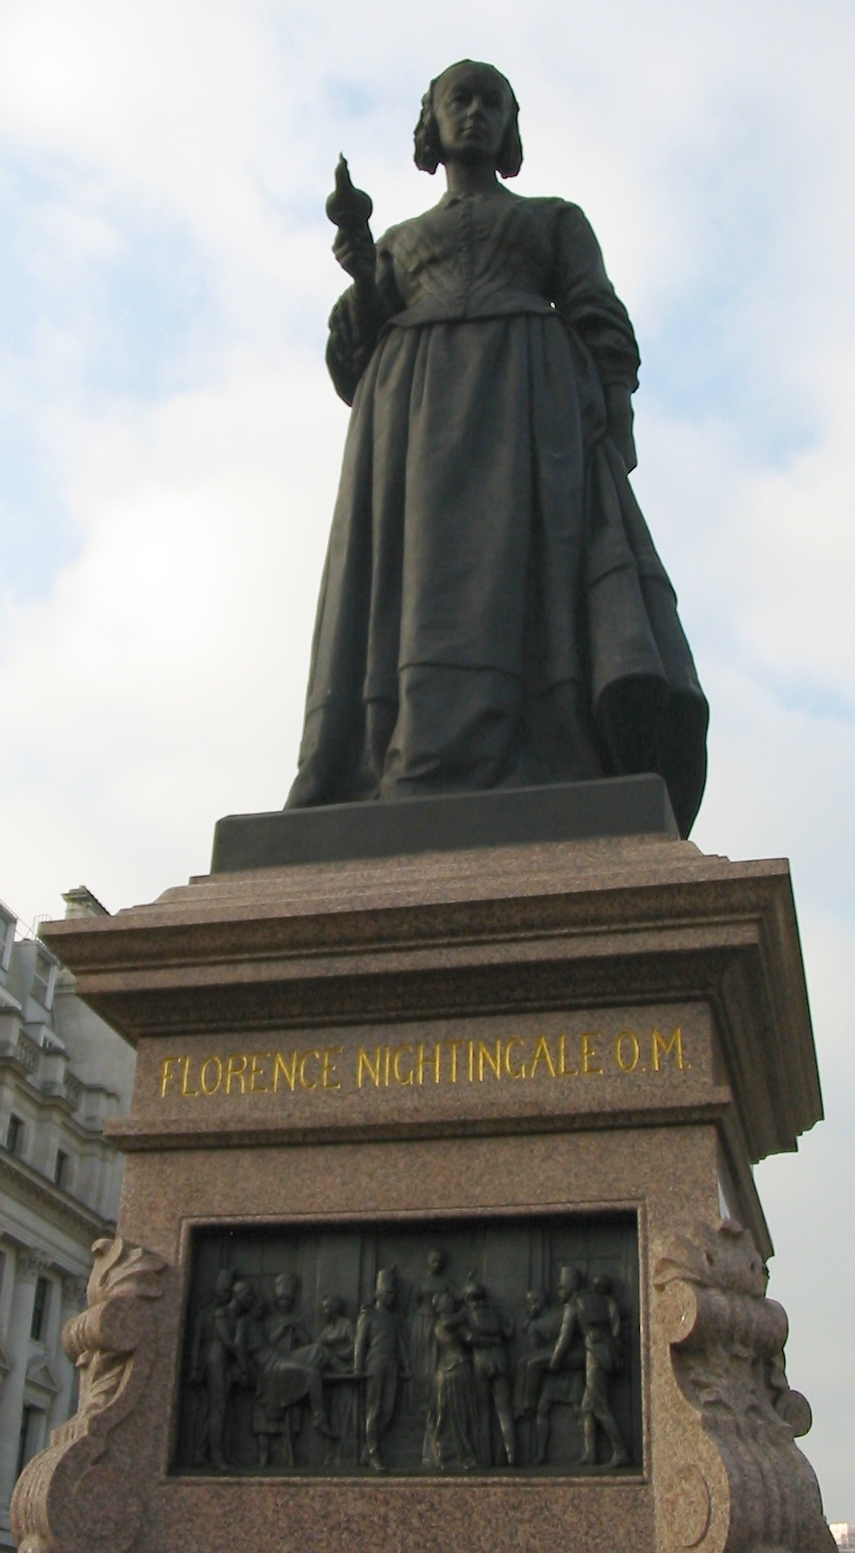 file florence nightingale monument london jpg file florence nightingale monument london jpg